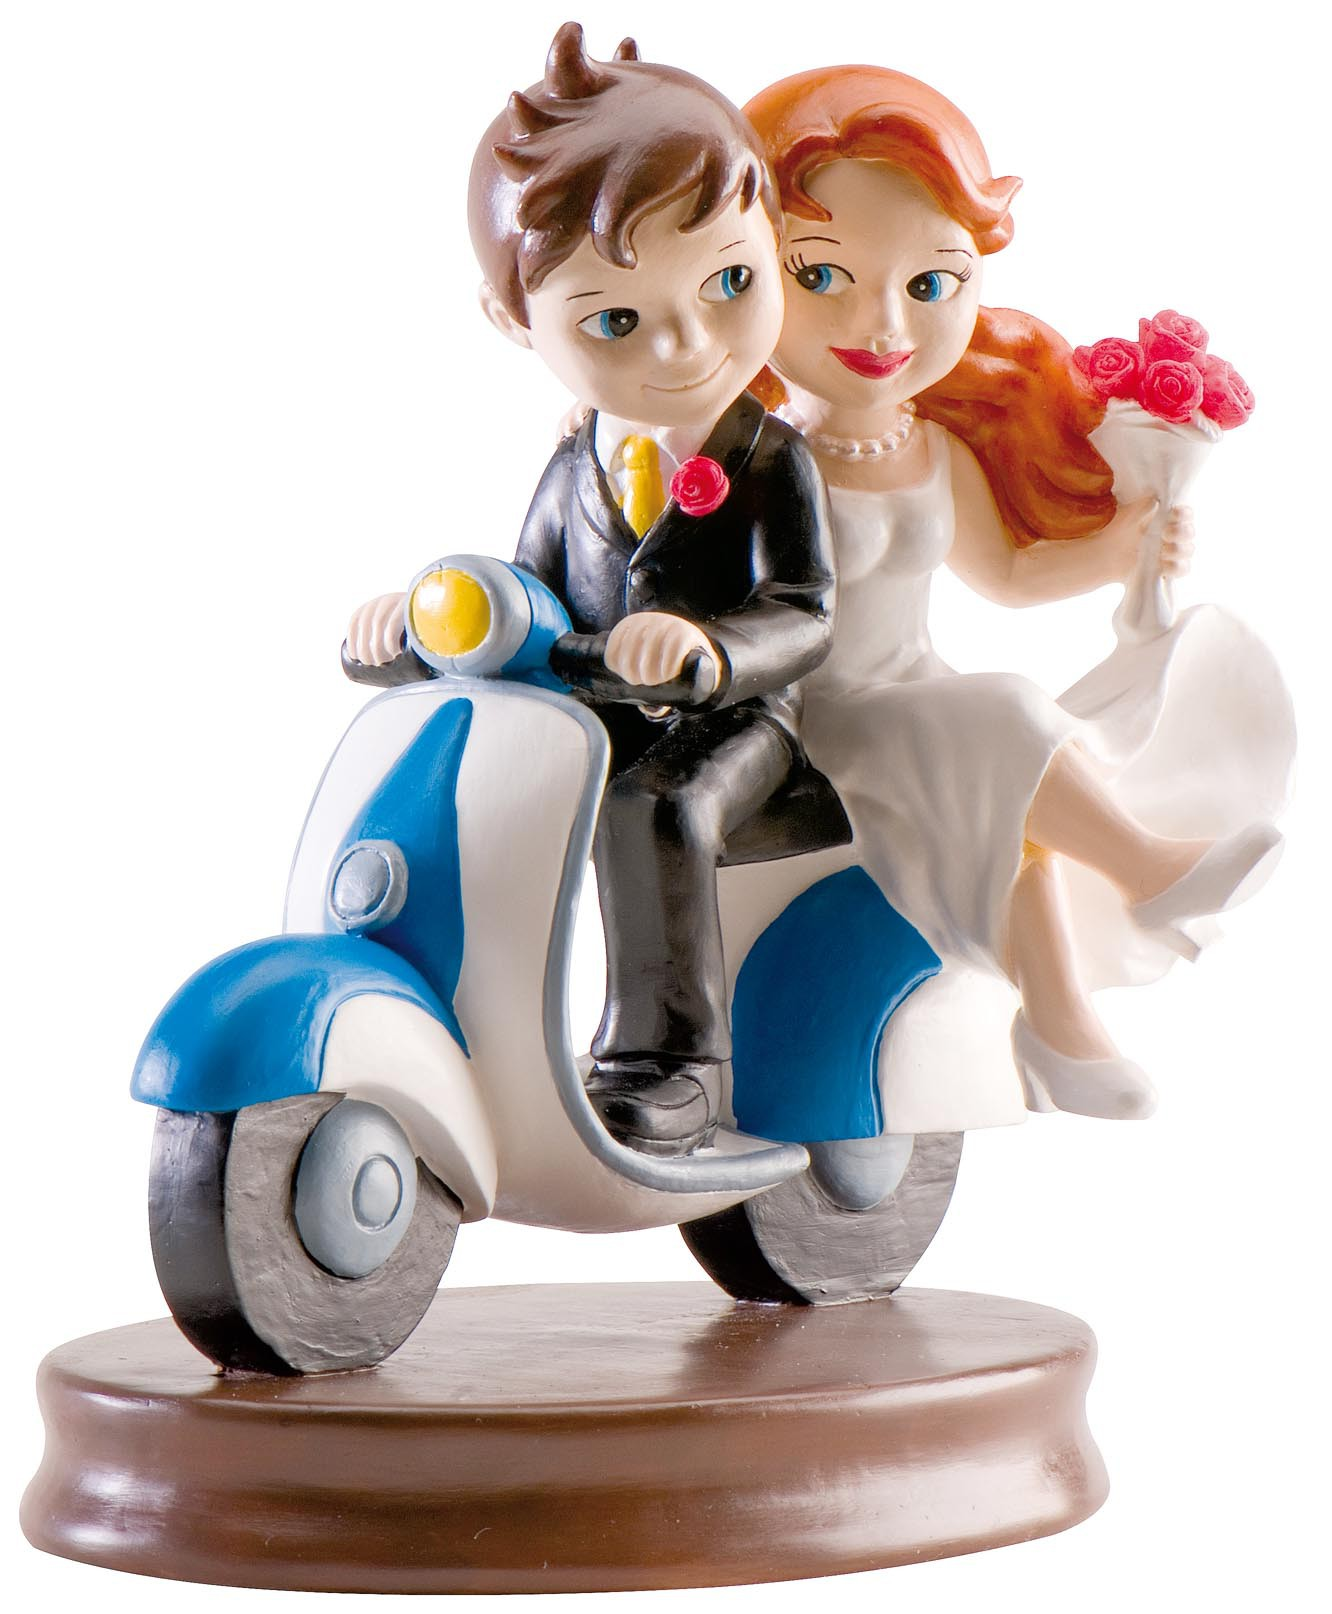 Married couple riding a scooter figurine